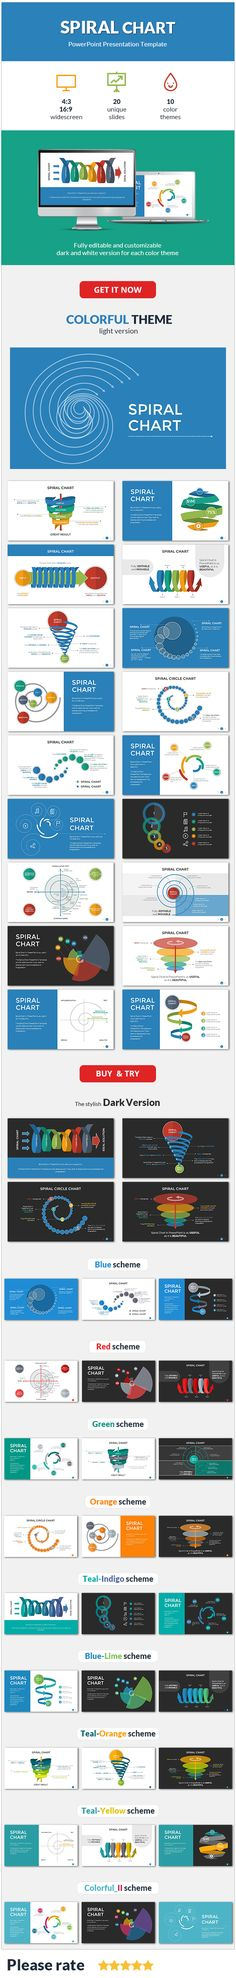 Accolade Presentation Template Presentation templates, Power - Sales Presentation Template